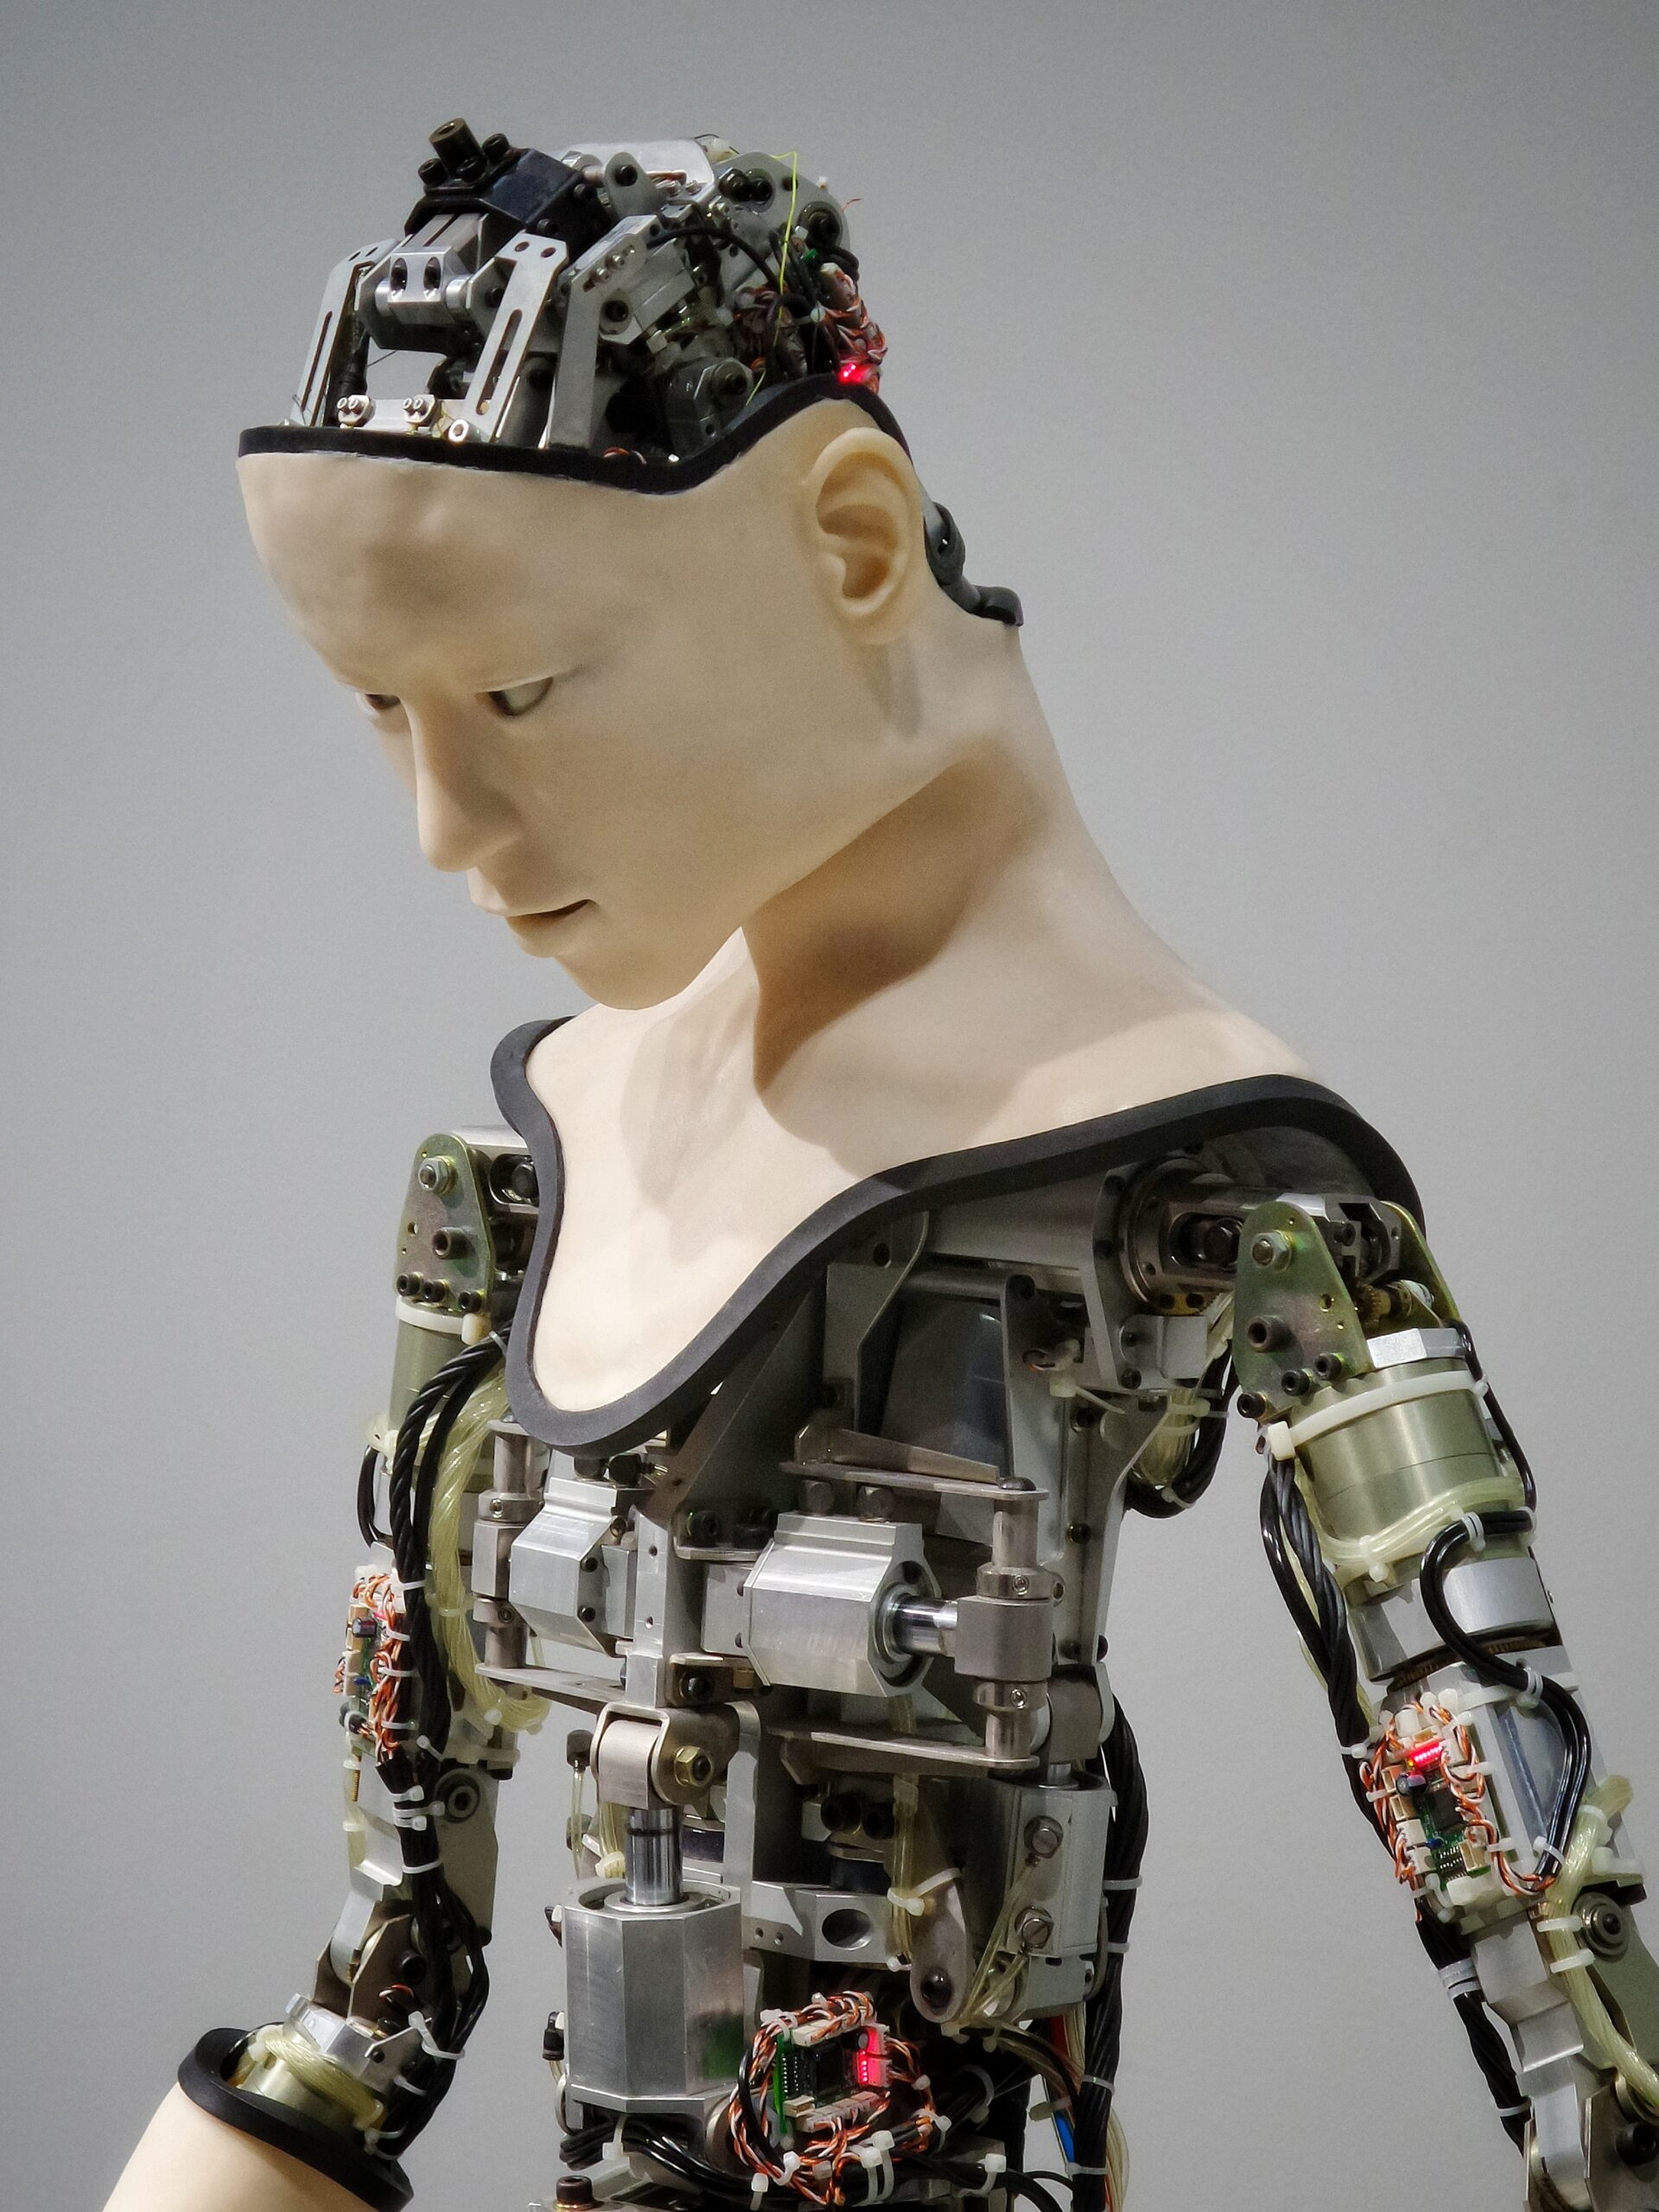 Image shows humanoid robot looking downward. Are sex robots the wave of the future?